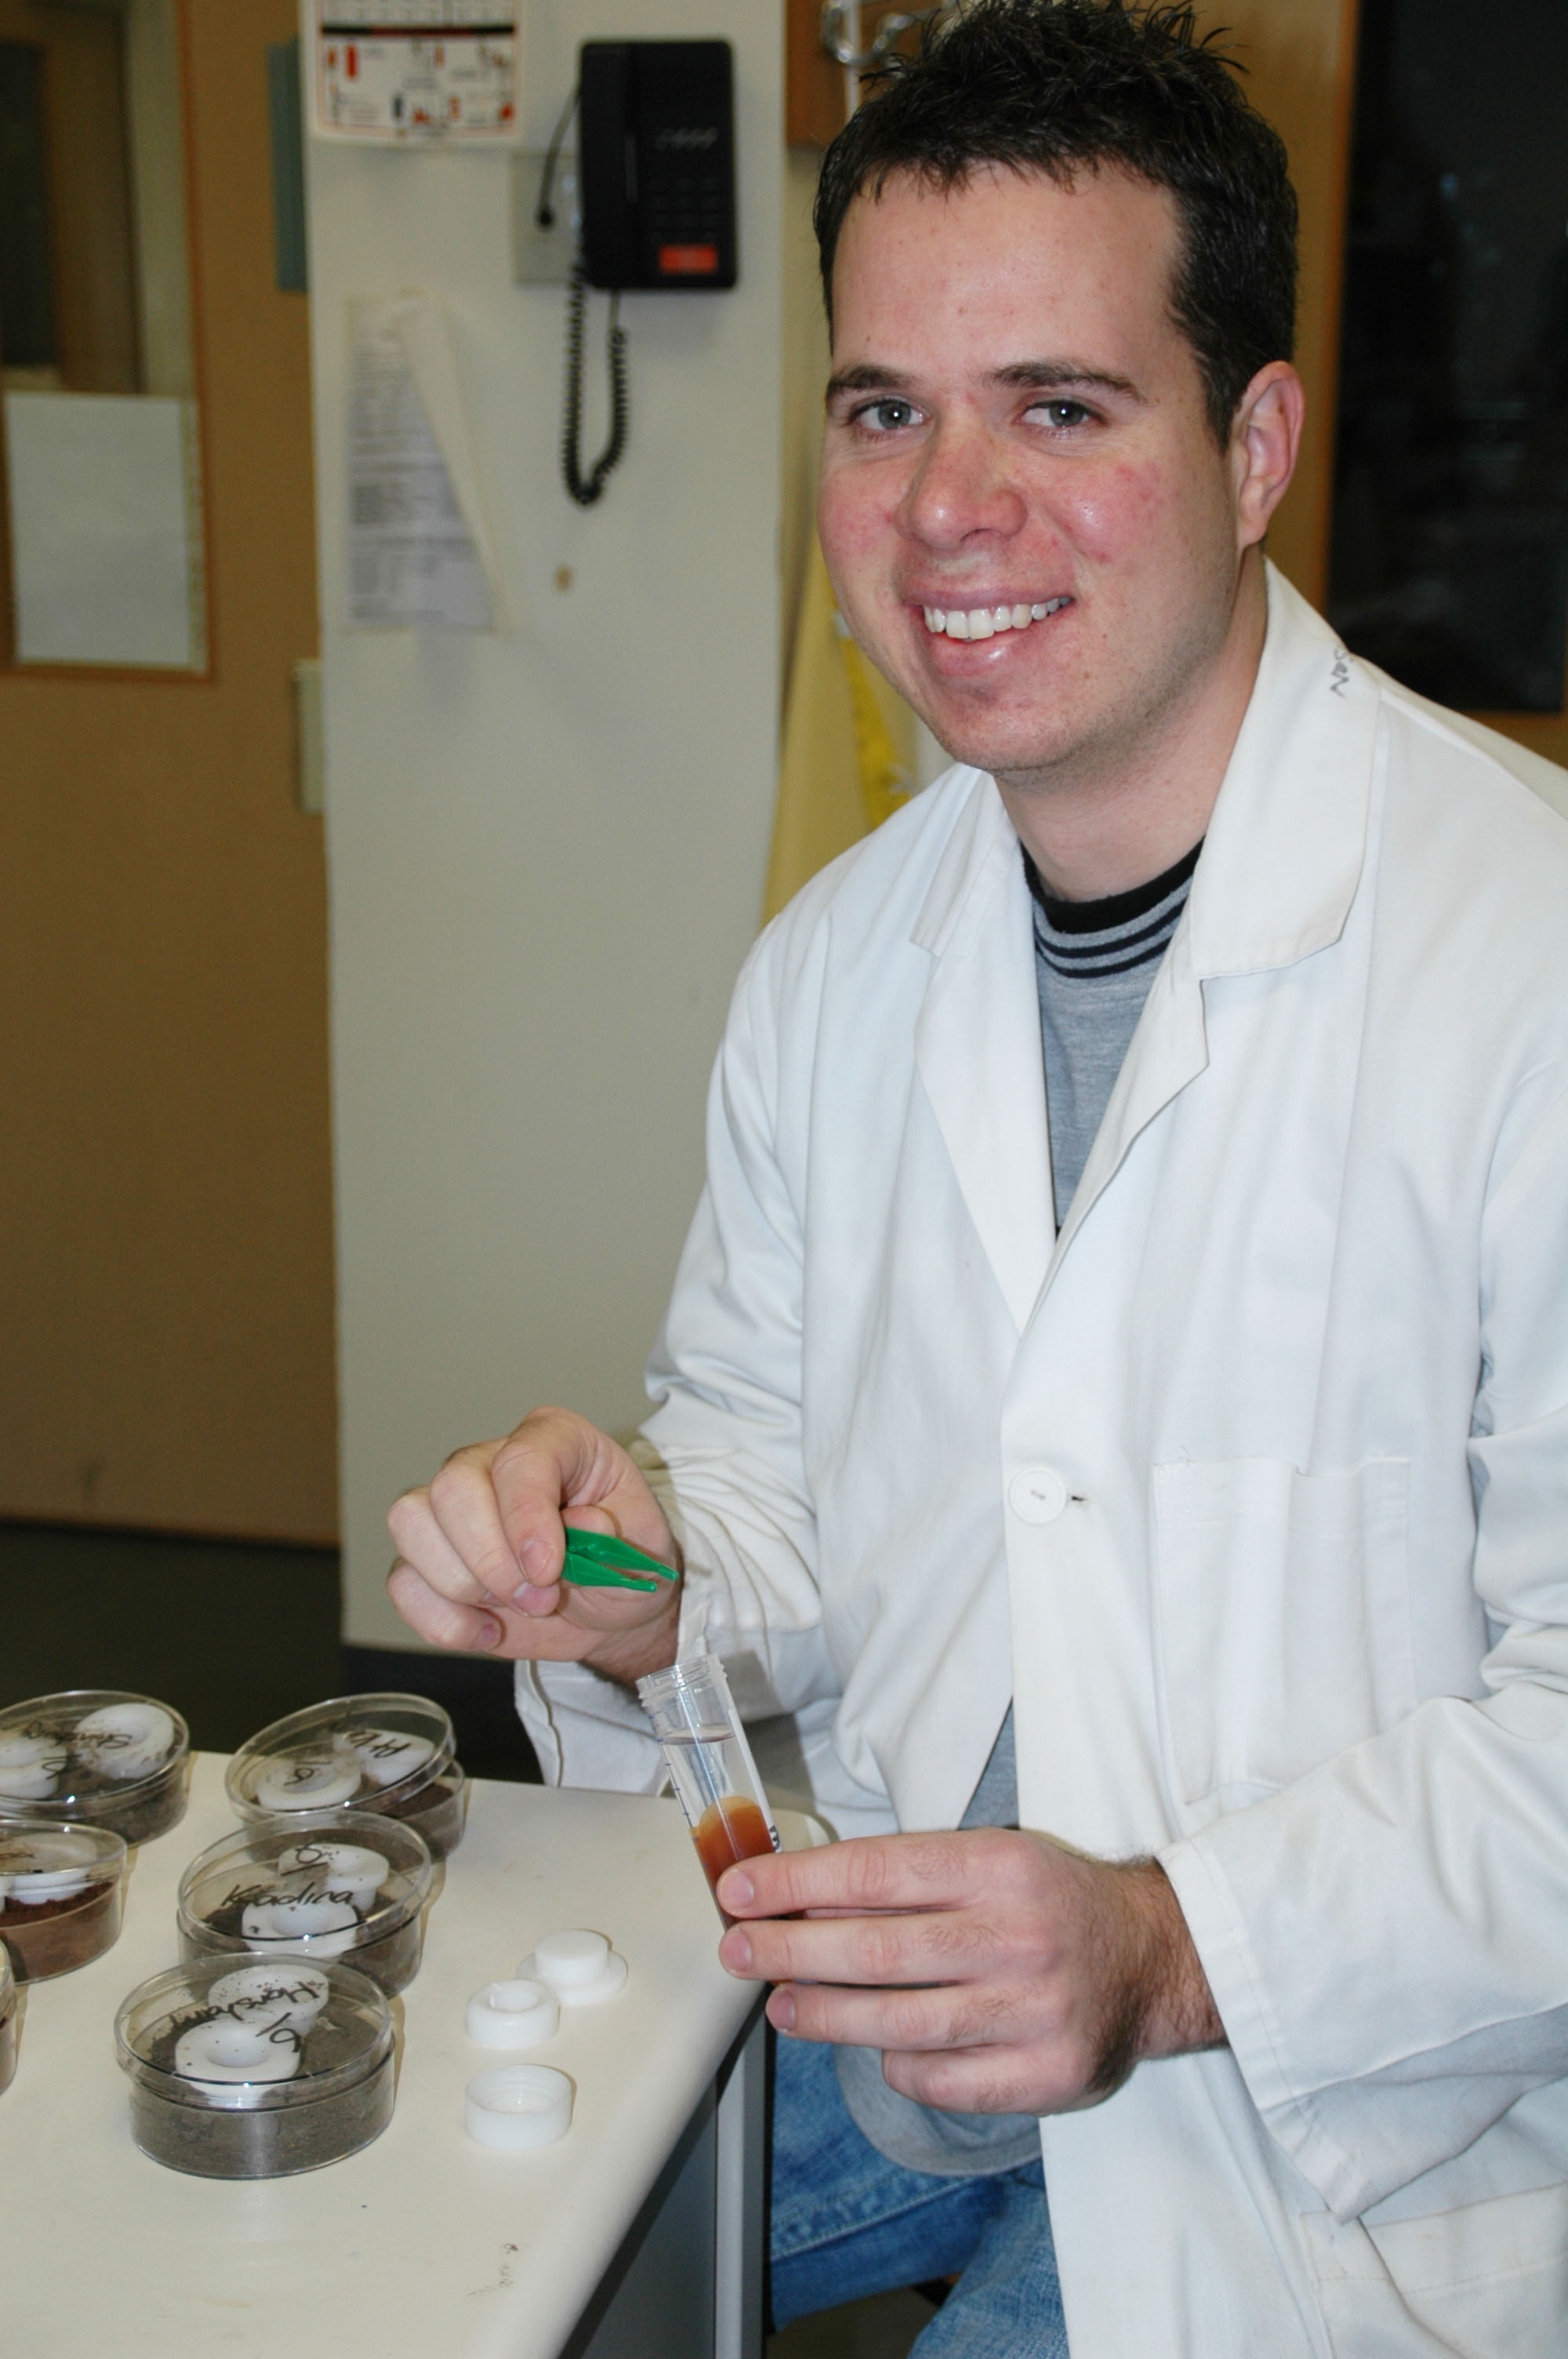 Dr Sean Mason, University of Adelaide, holding a test tube in his right hand and tweezers in his left hand.